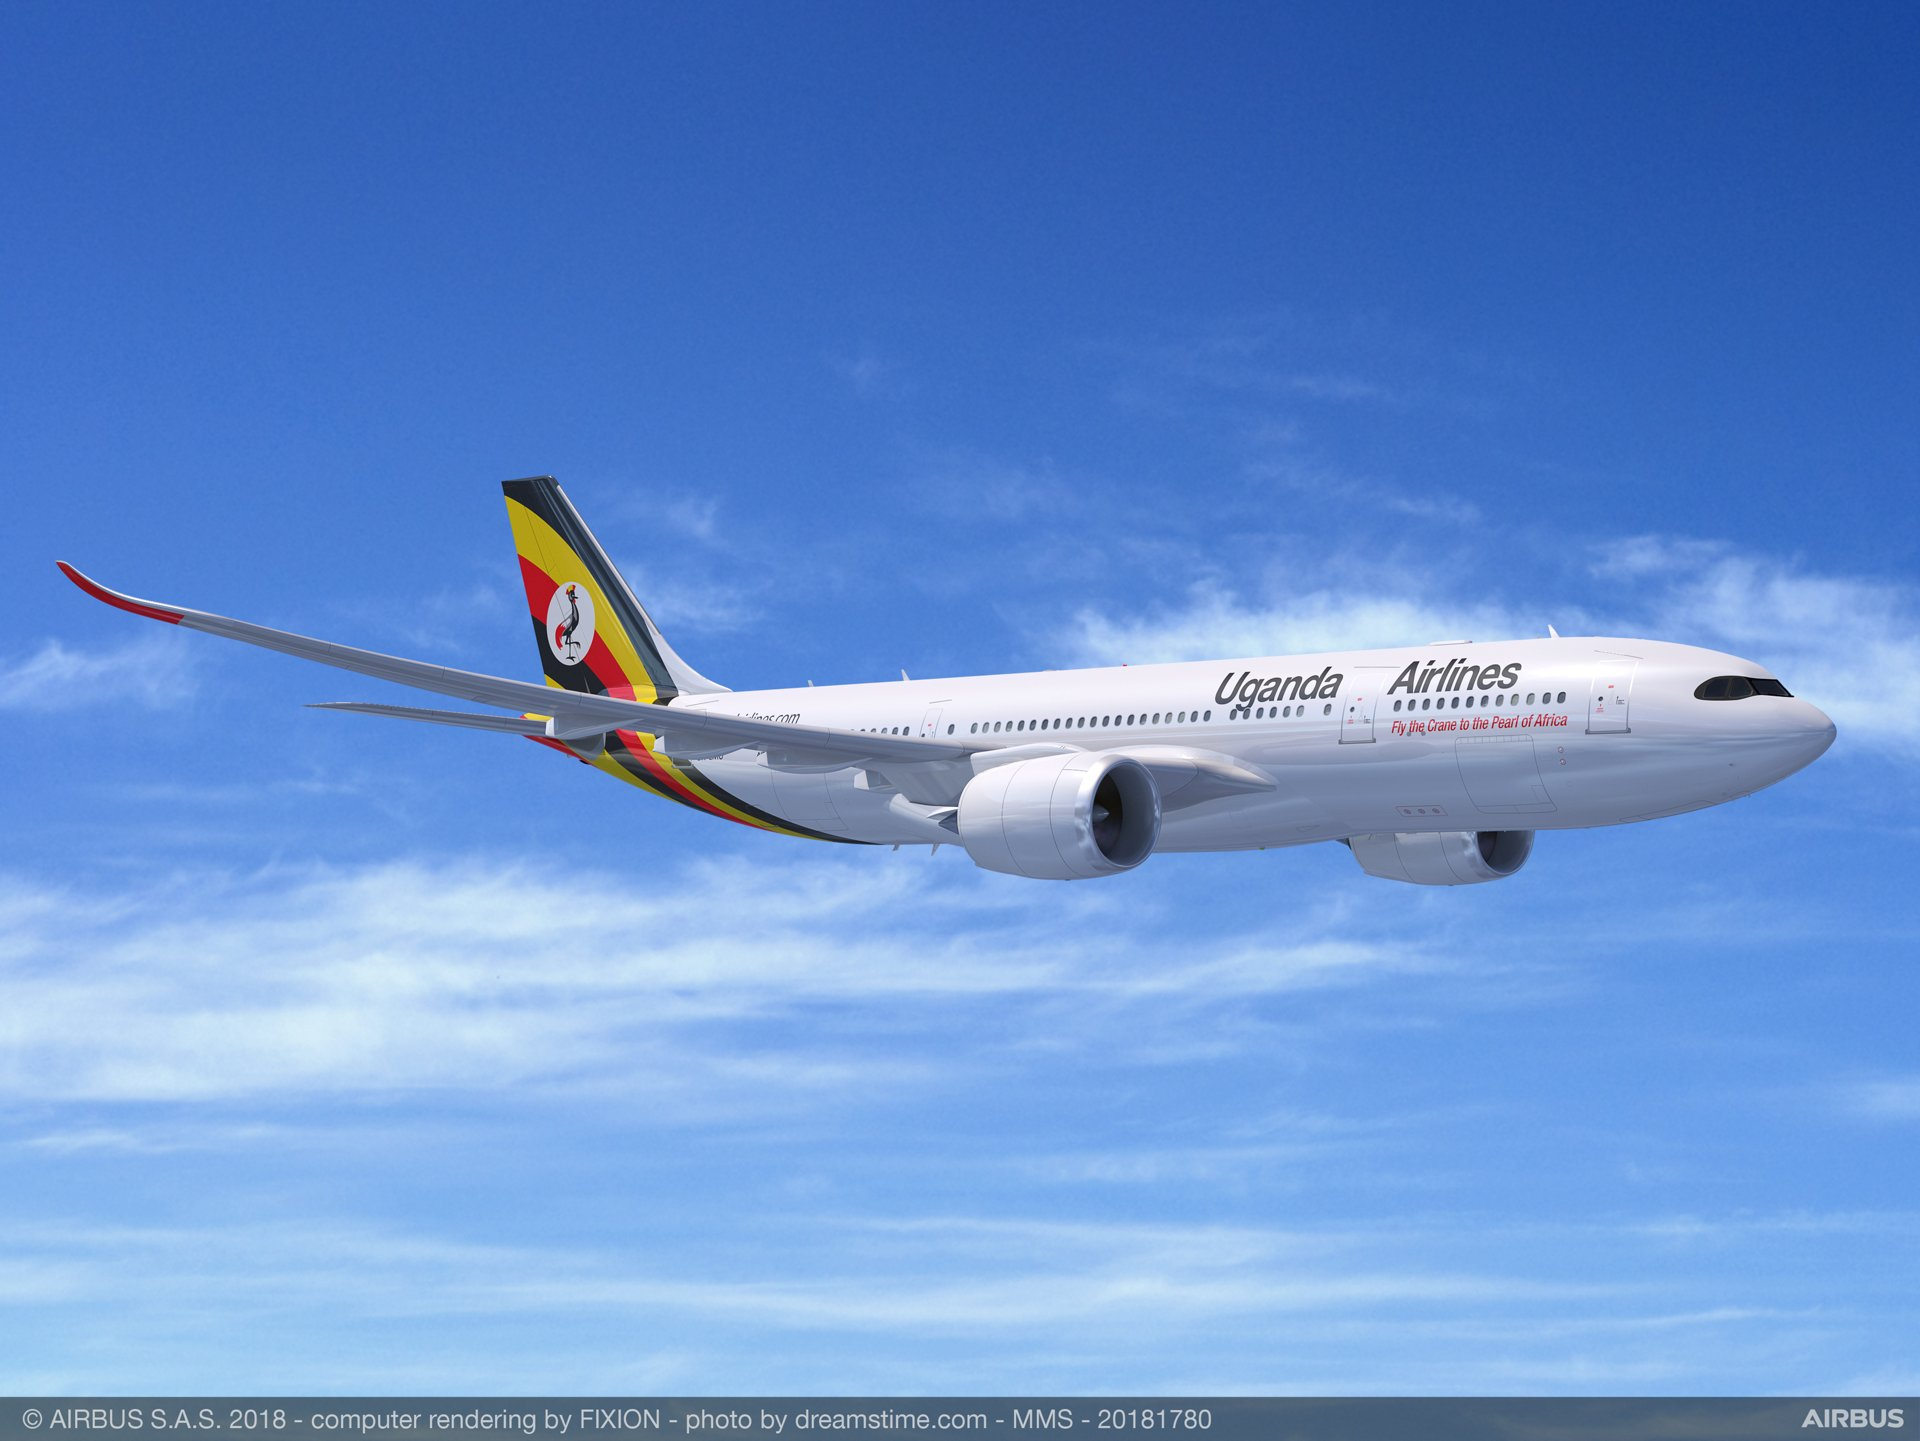 Uganda Airlines plans to use two A330-800 aircraft to build its medium- and long-haul network